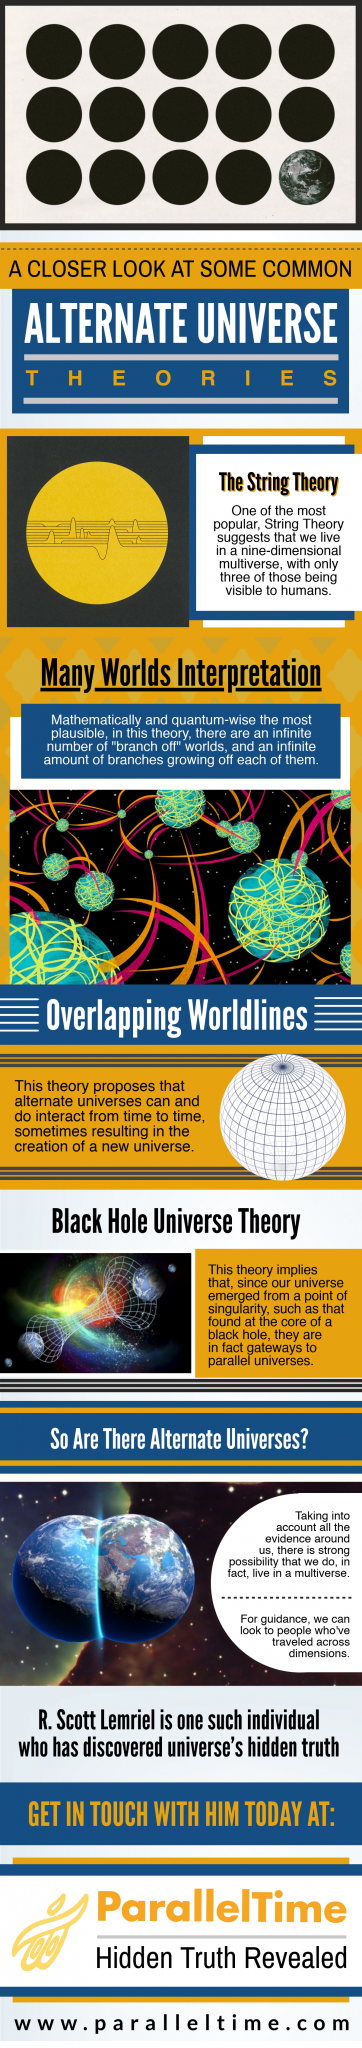 A Closer Look at Some Common Alternate Universe Theories